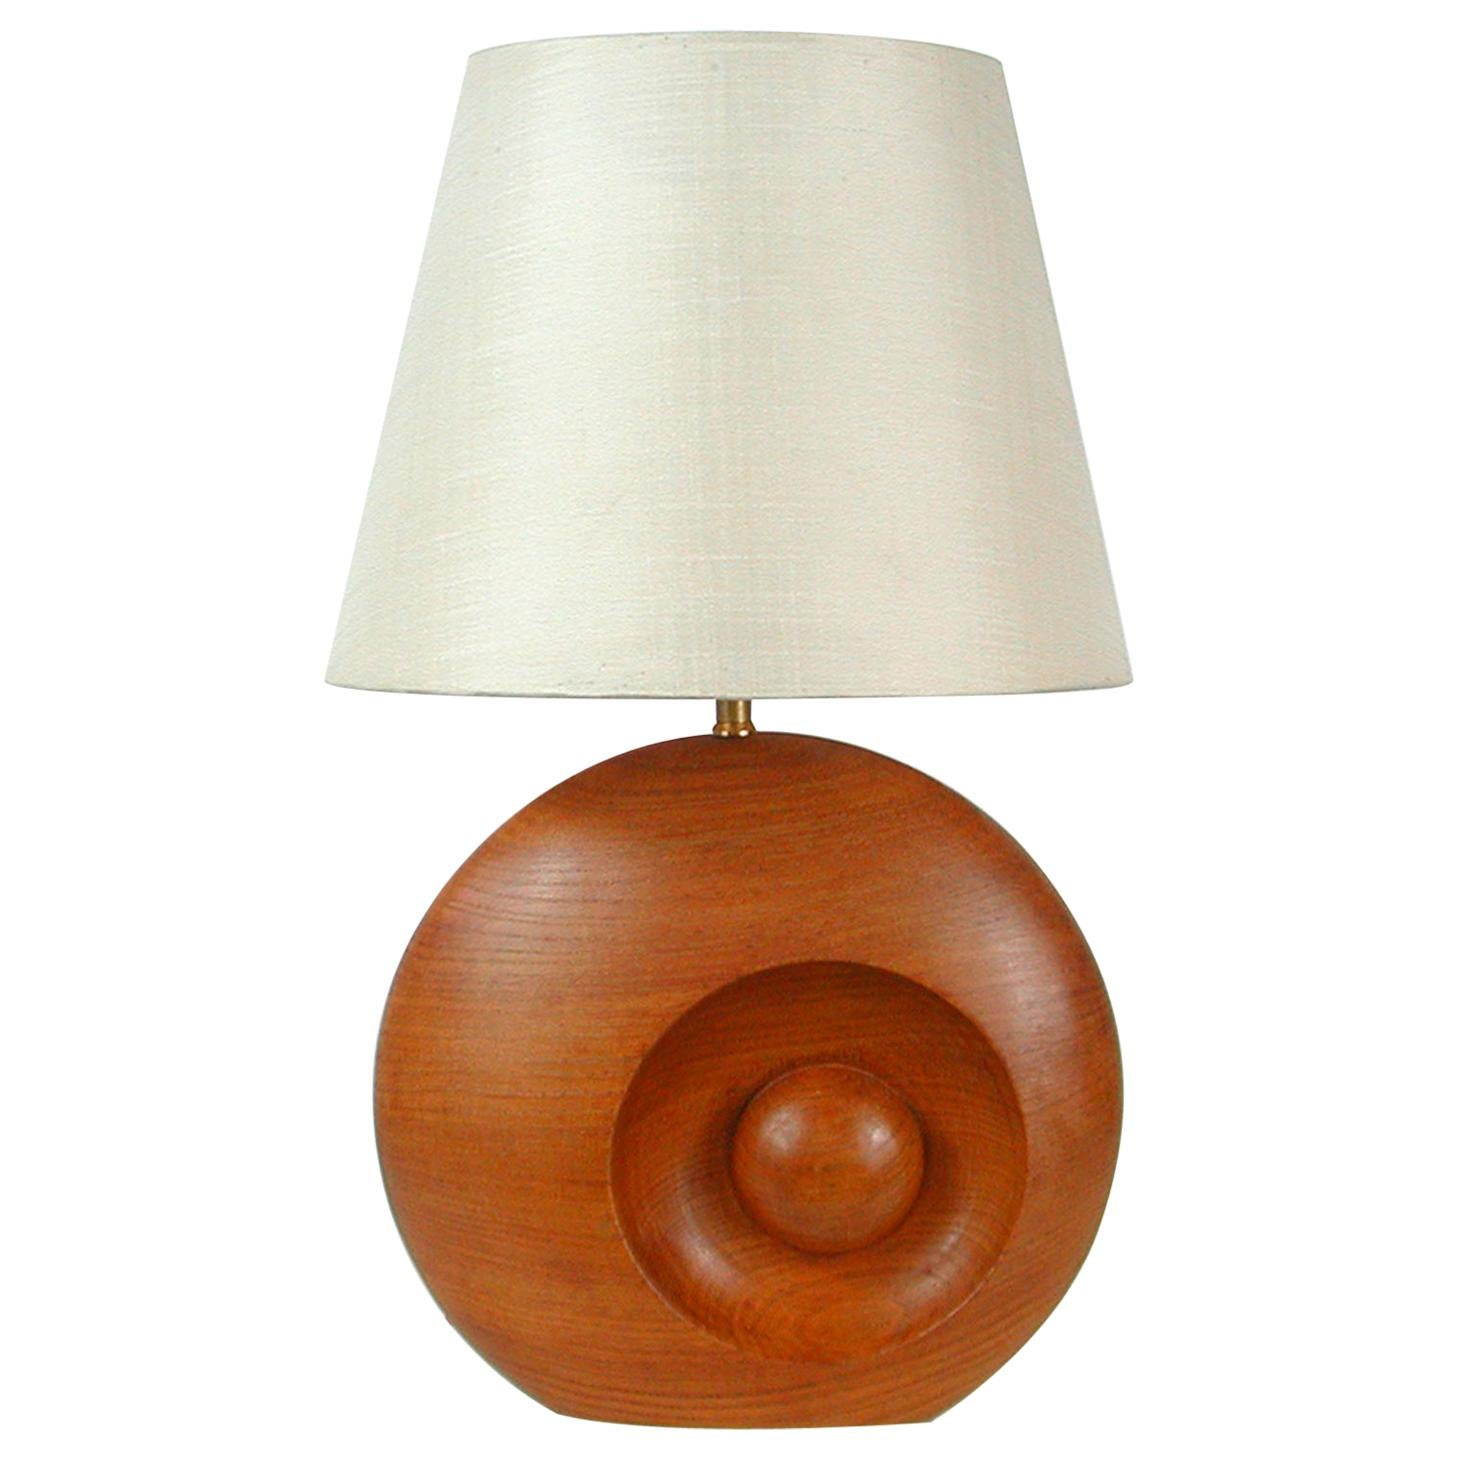 Midcentury Swedish Teak Table Lamp, 1960s